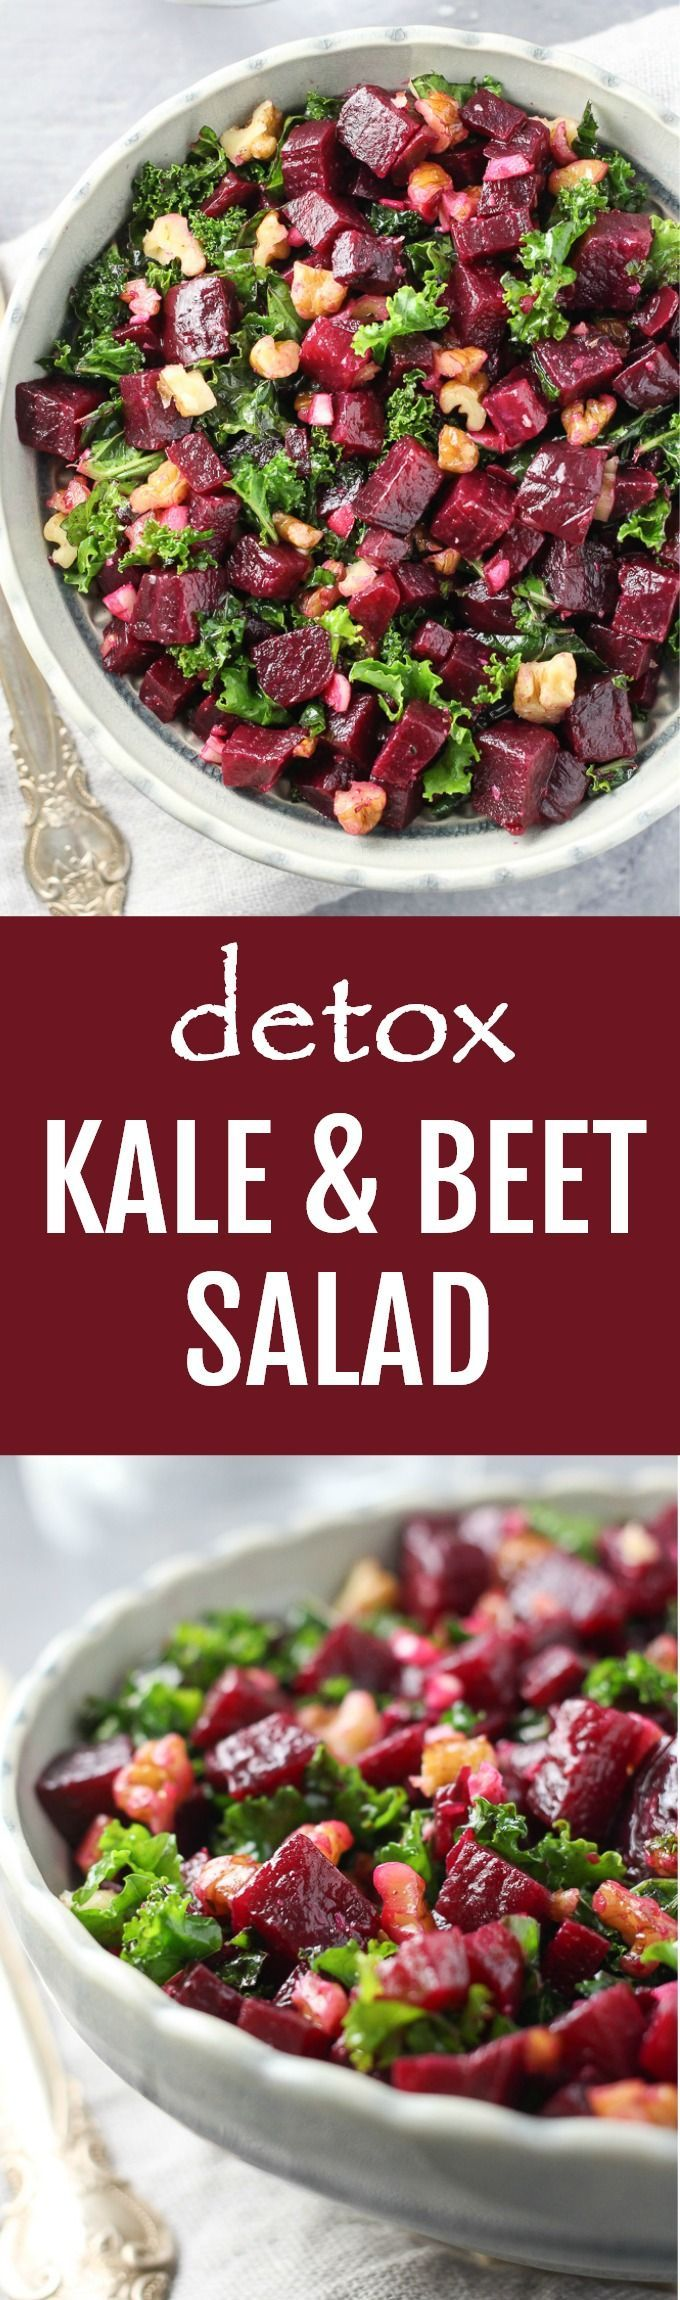 This kale and beet salad is chock-full of healthy nutrients. It's made with super foods such as beets, kale, walnuts, garlic, and olive oil. Healthy and delicious.